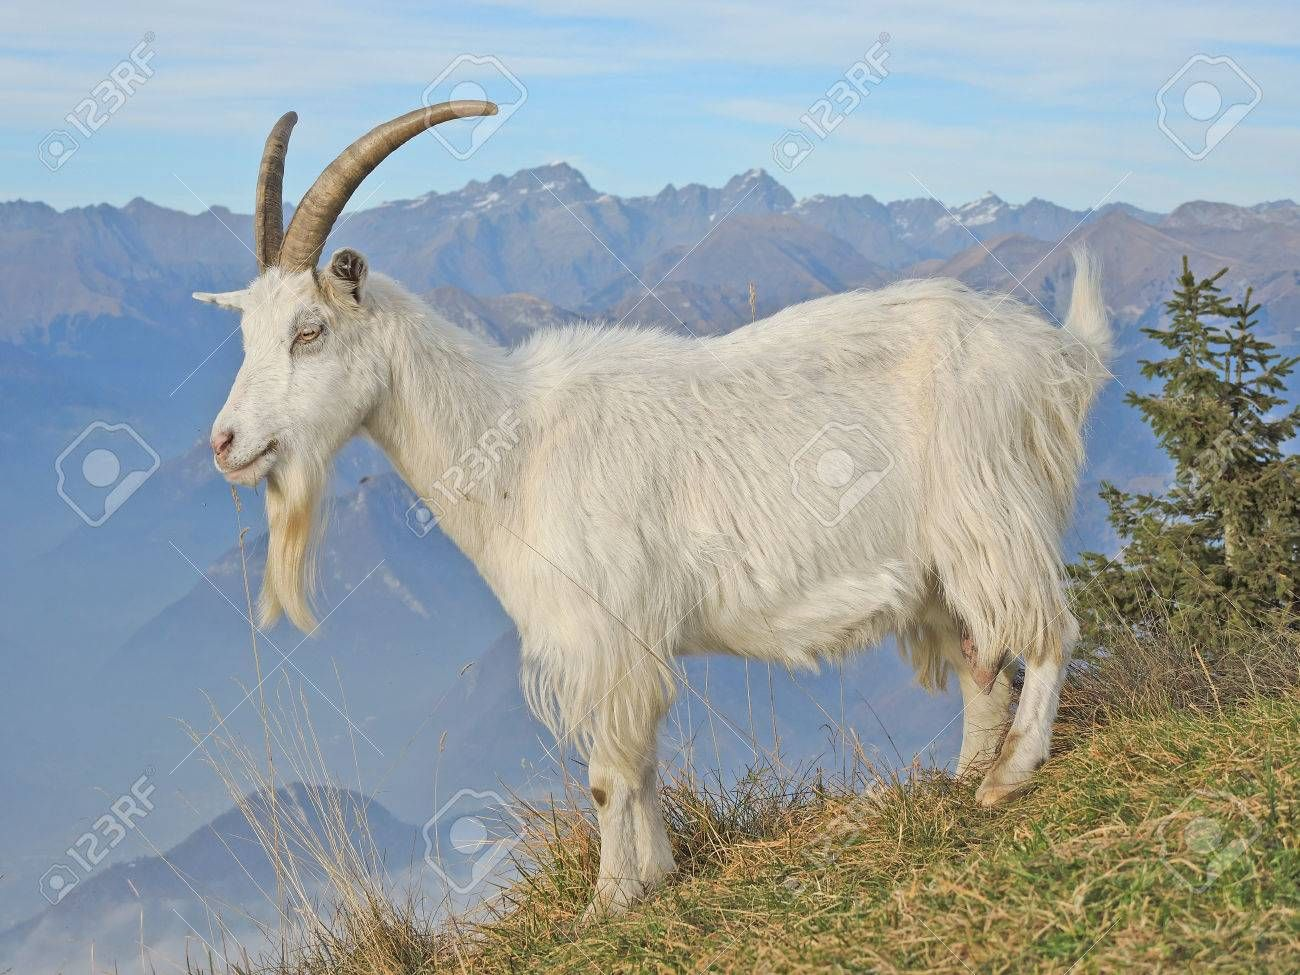 Stock Photo Goats, Animals of the world, Animals